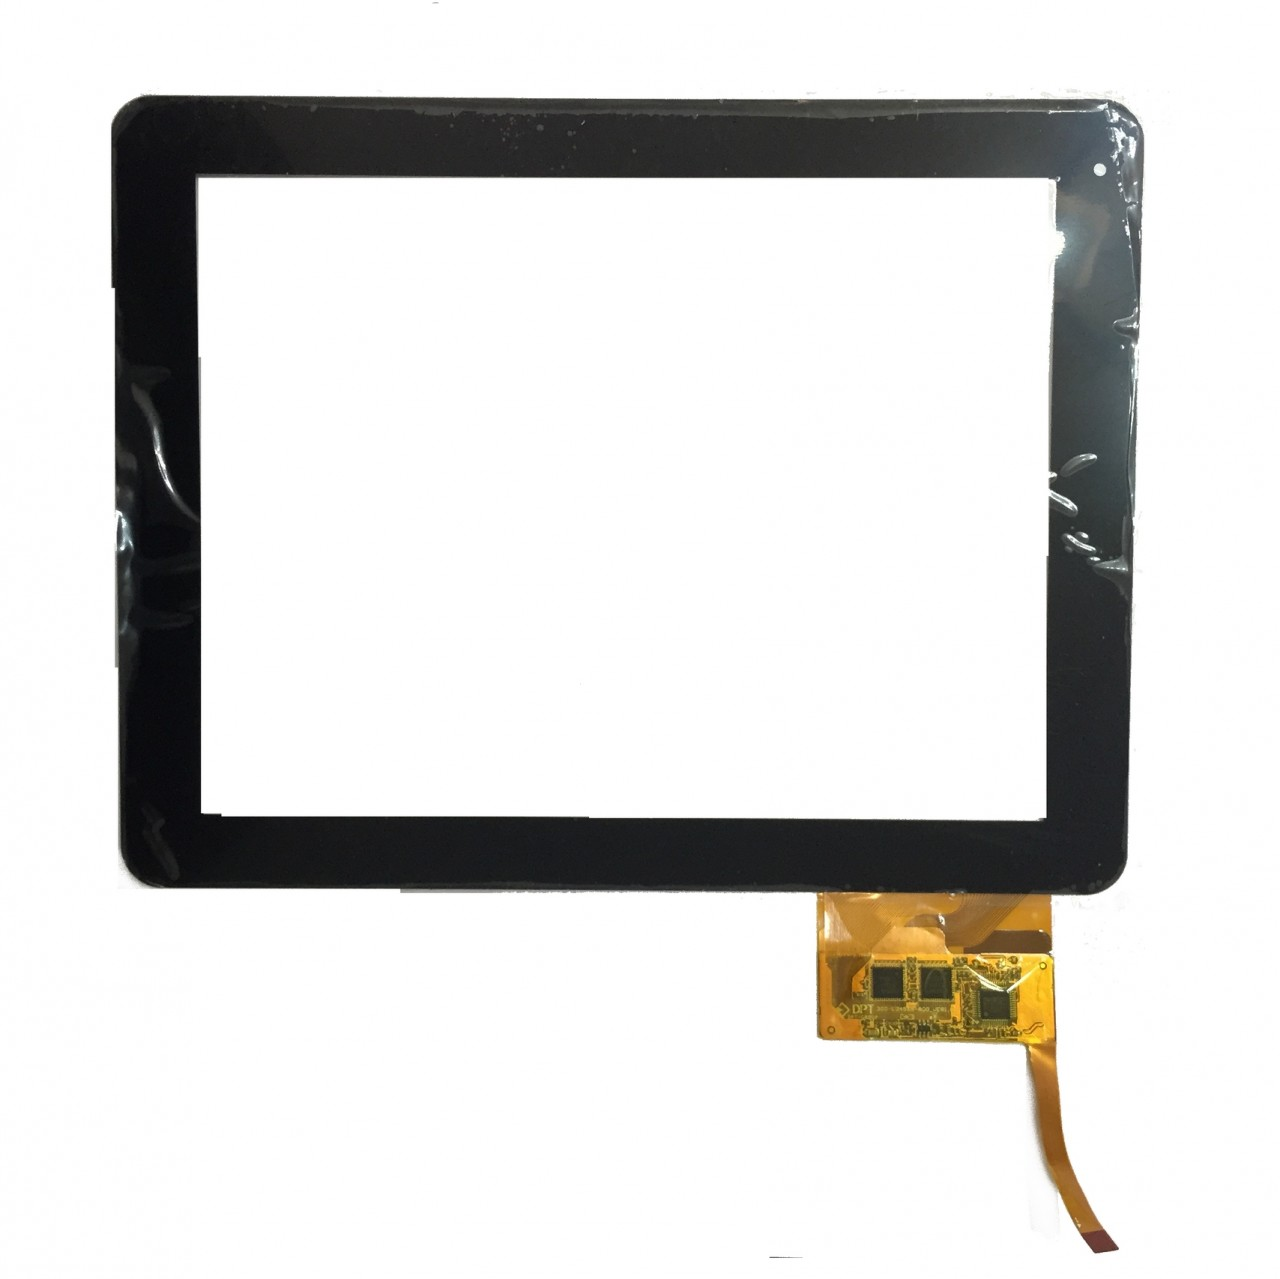 Touchscreen Digitizer eBoda Impresspeed Supreme X200 Geam Sticla Tableta imagine powerlaptop.ro 2021